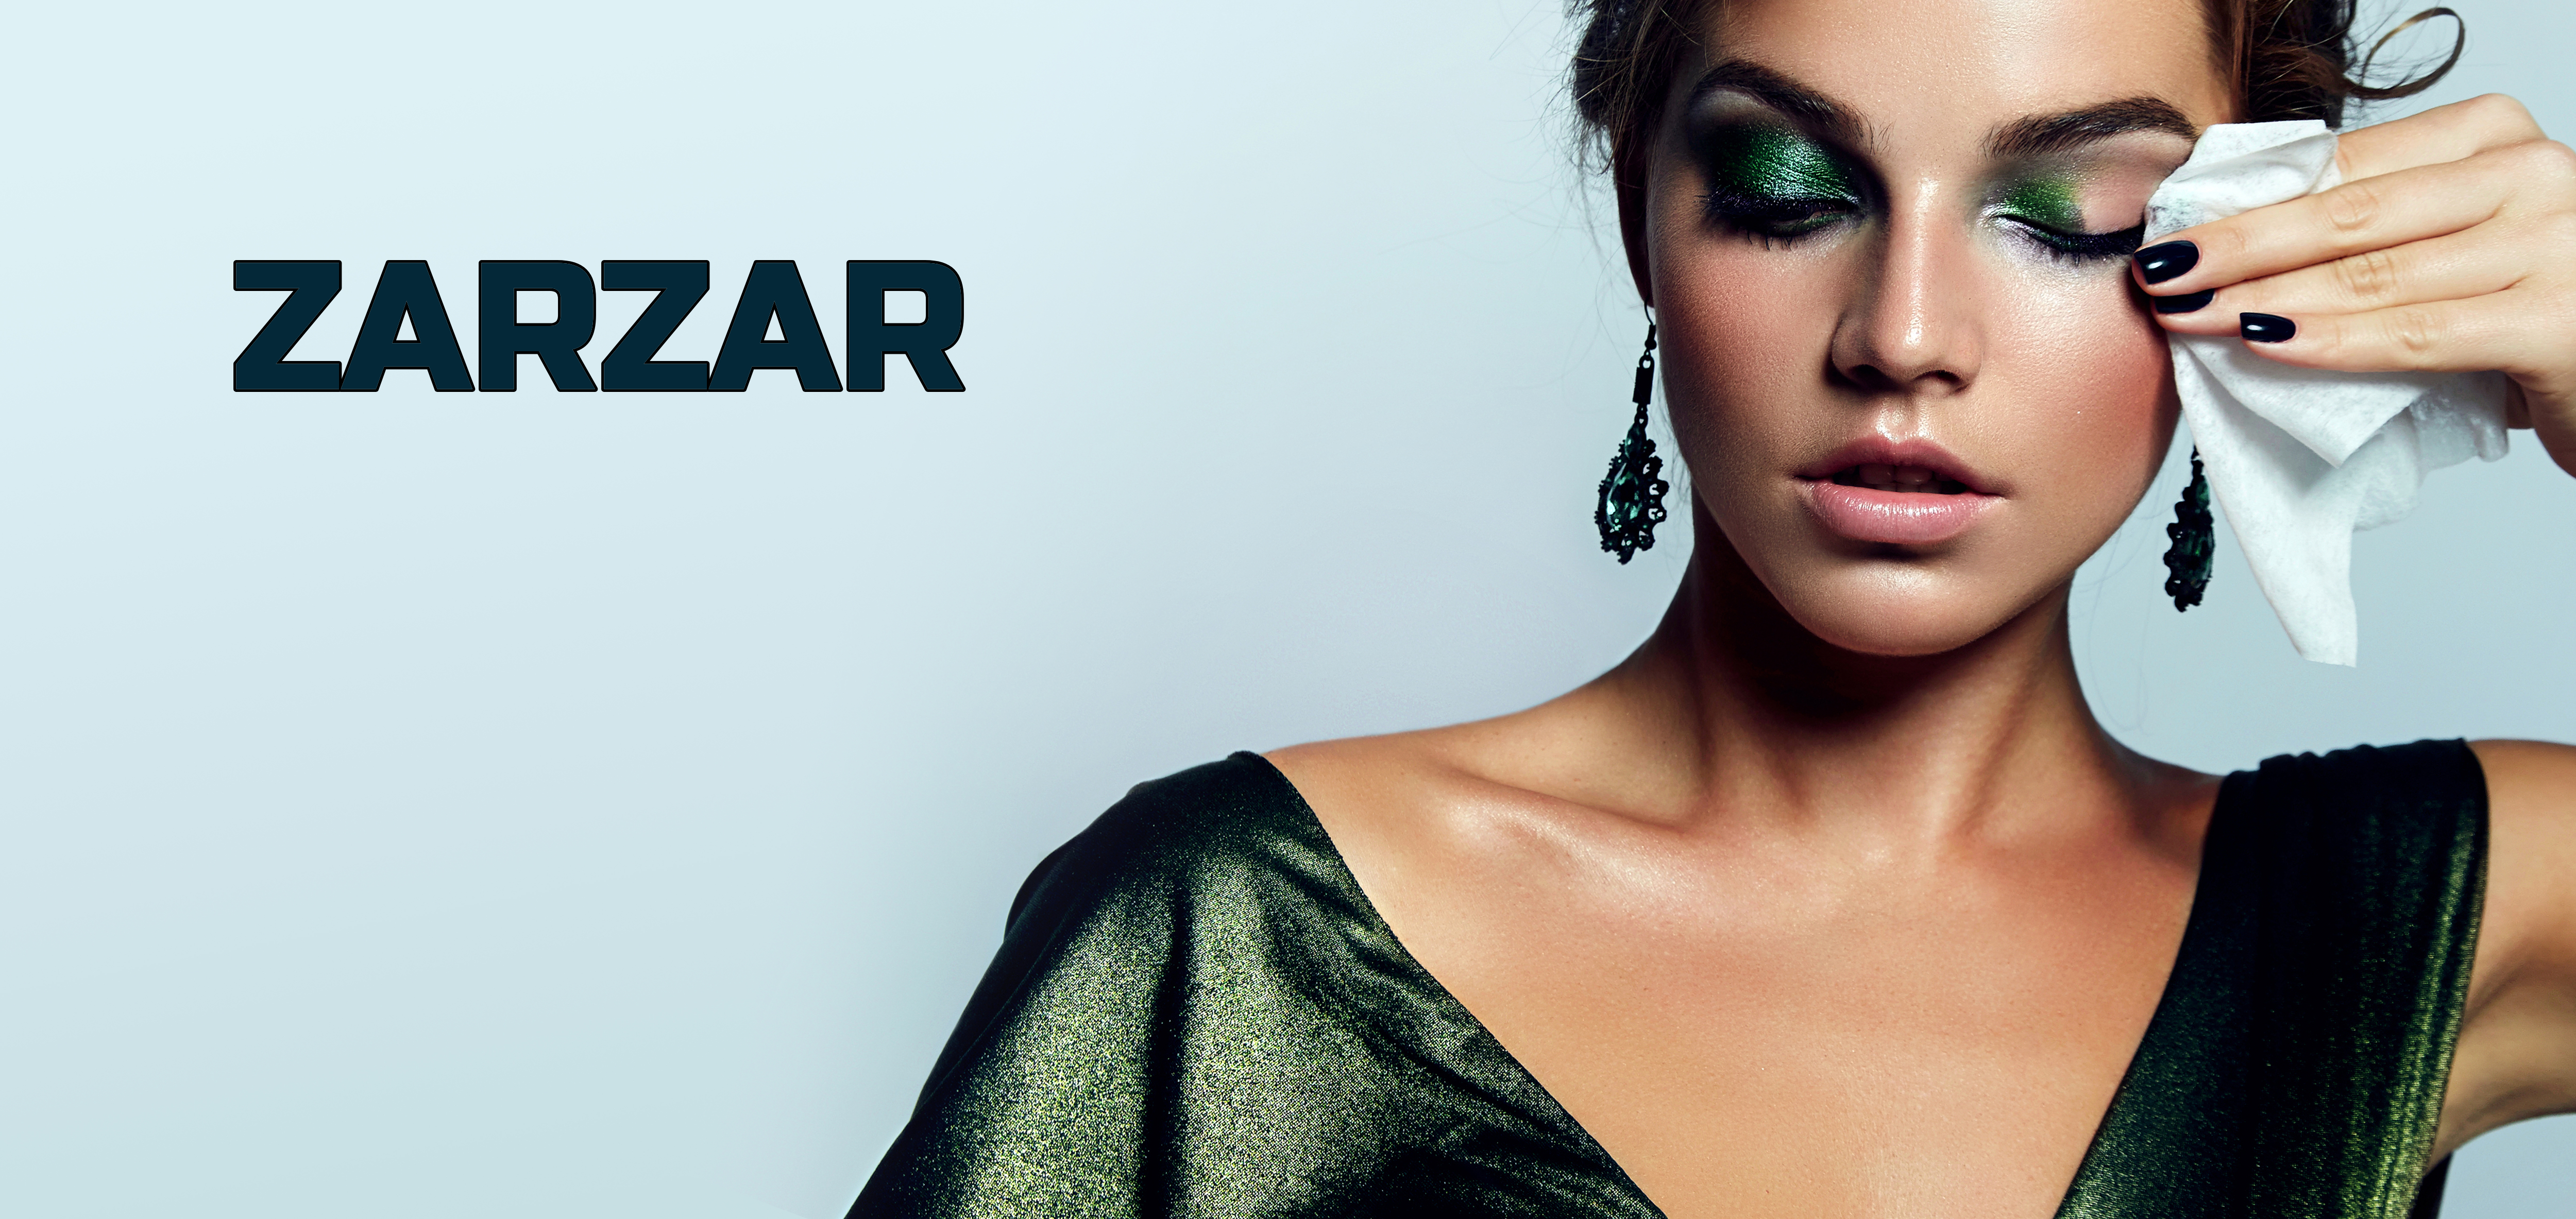 ZARZAR FASHION Beauty Products For Women. Luxury Hair Care & Luxury Makeup. Luxury Cosmetics & Luxury Skincare Products For Women.